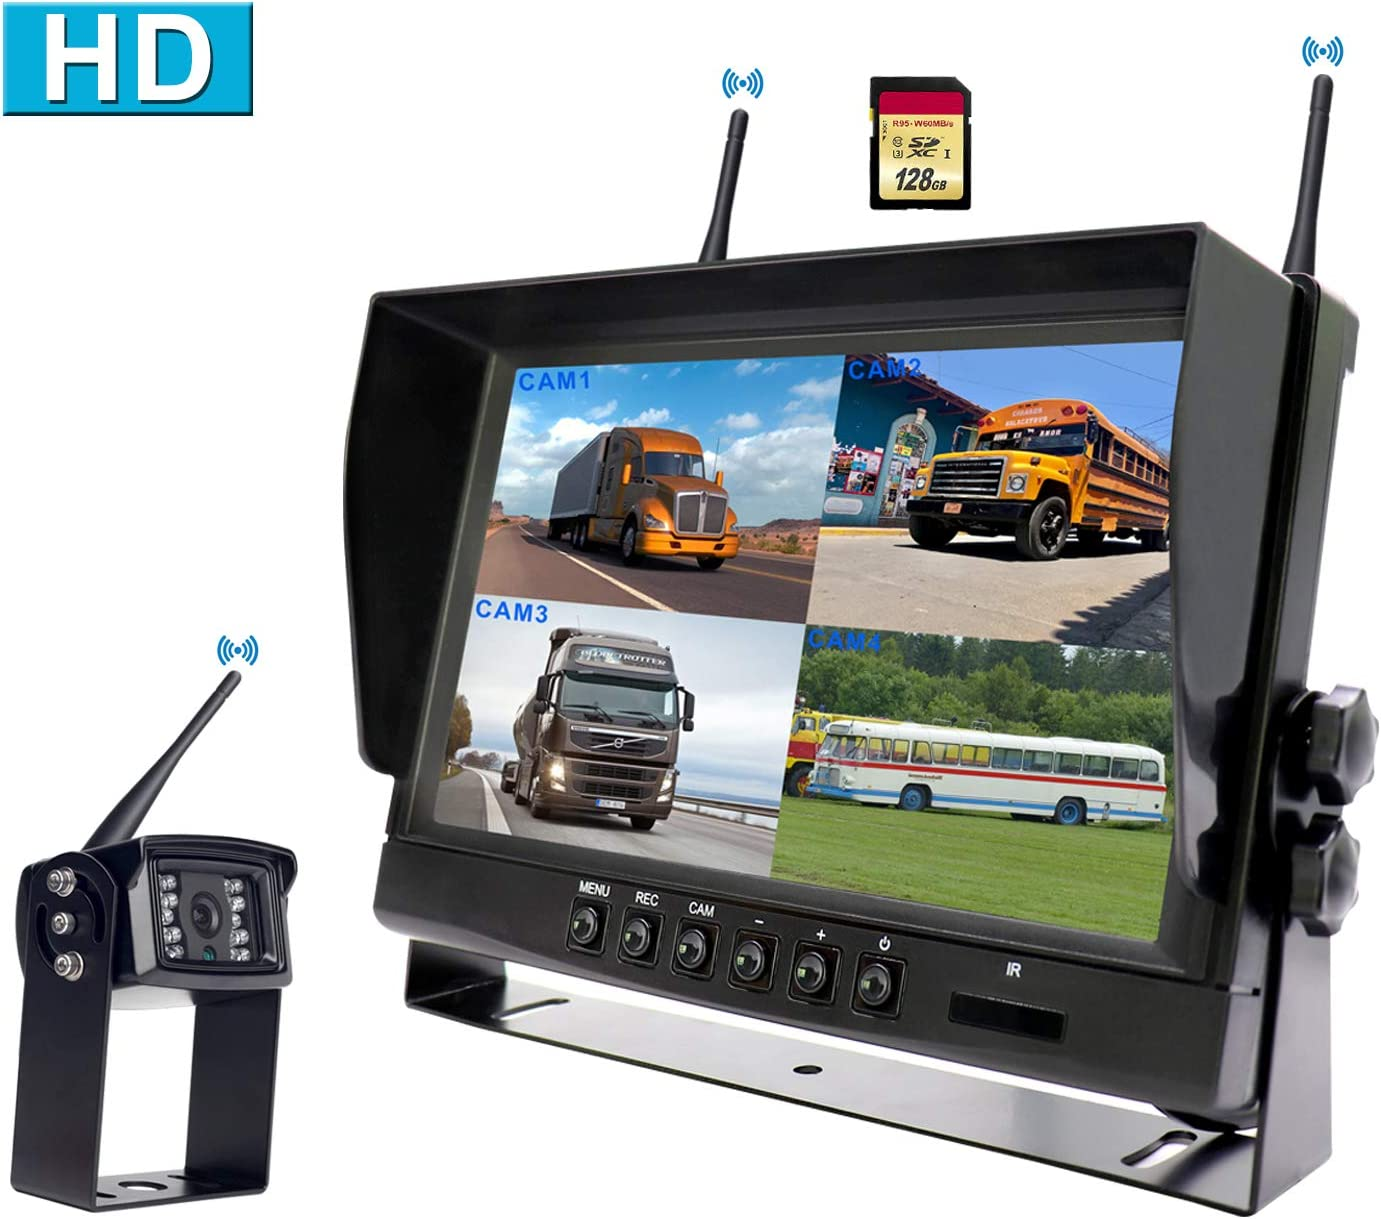 CAMONS Digital Wireless Backup Camera for RV, 9 Monitor Quad Split No Flicker, Built-in DVR, 120 HD Night Vision IP69 Waterproof Camera Rear Side Front with Mic Remote Control